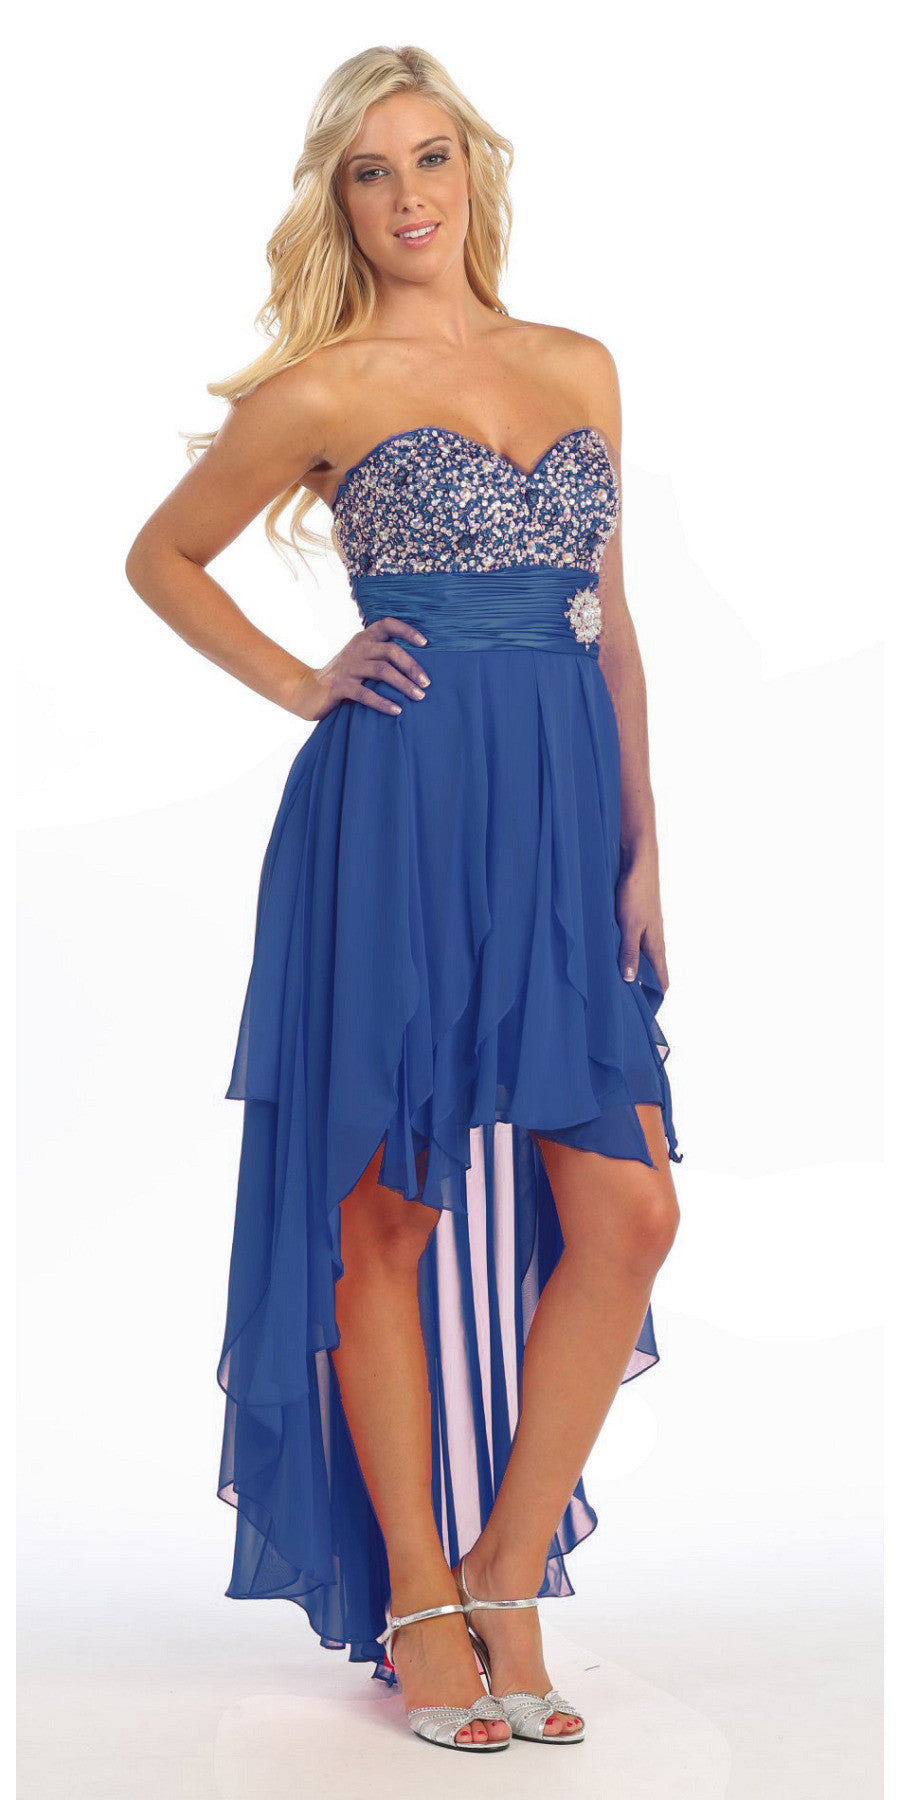 High Low Homecoming Royal Blue Dress Beads Sequins Asymmetrical Skirt